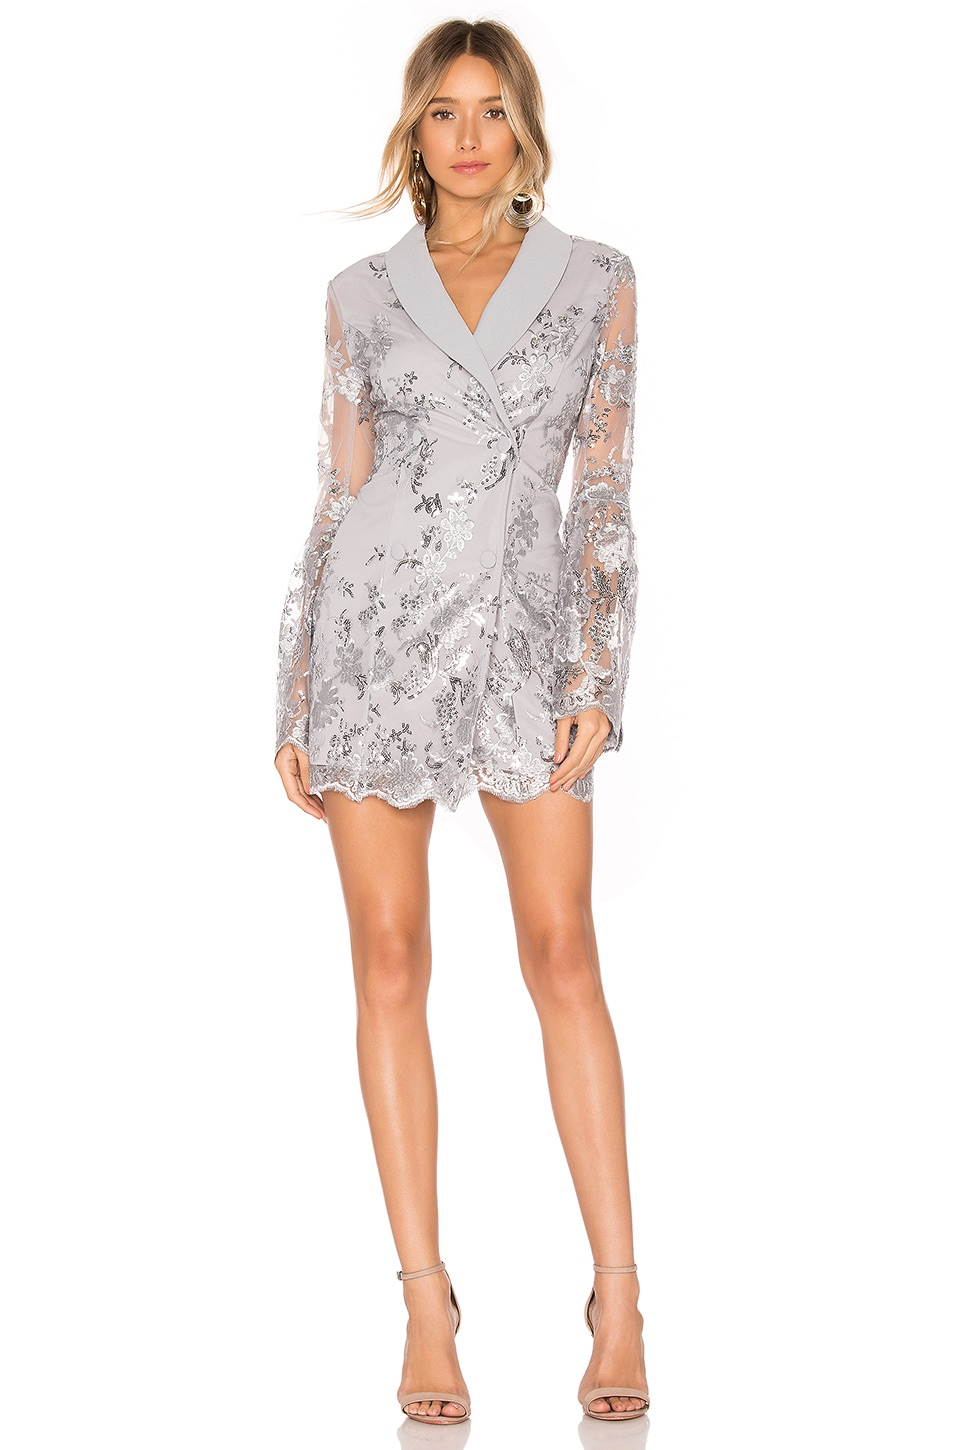 X by NBD Parker Suit Dress in Silver